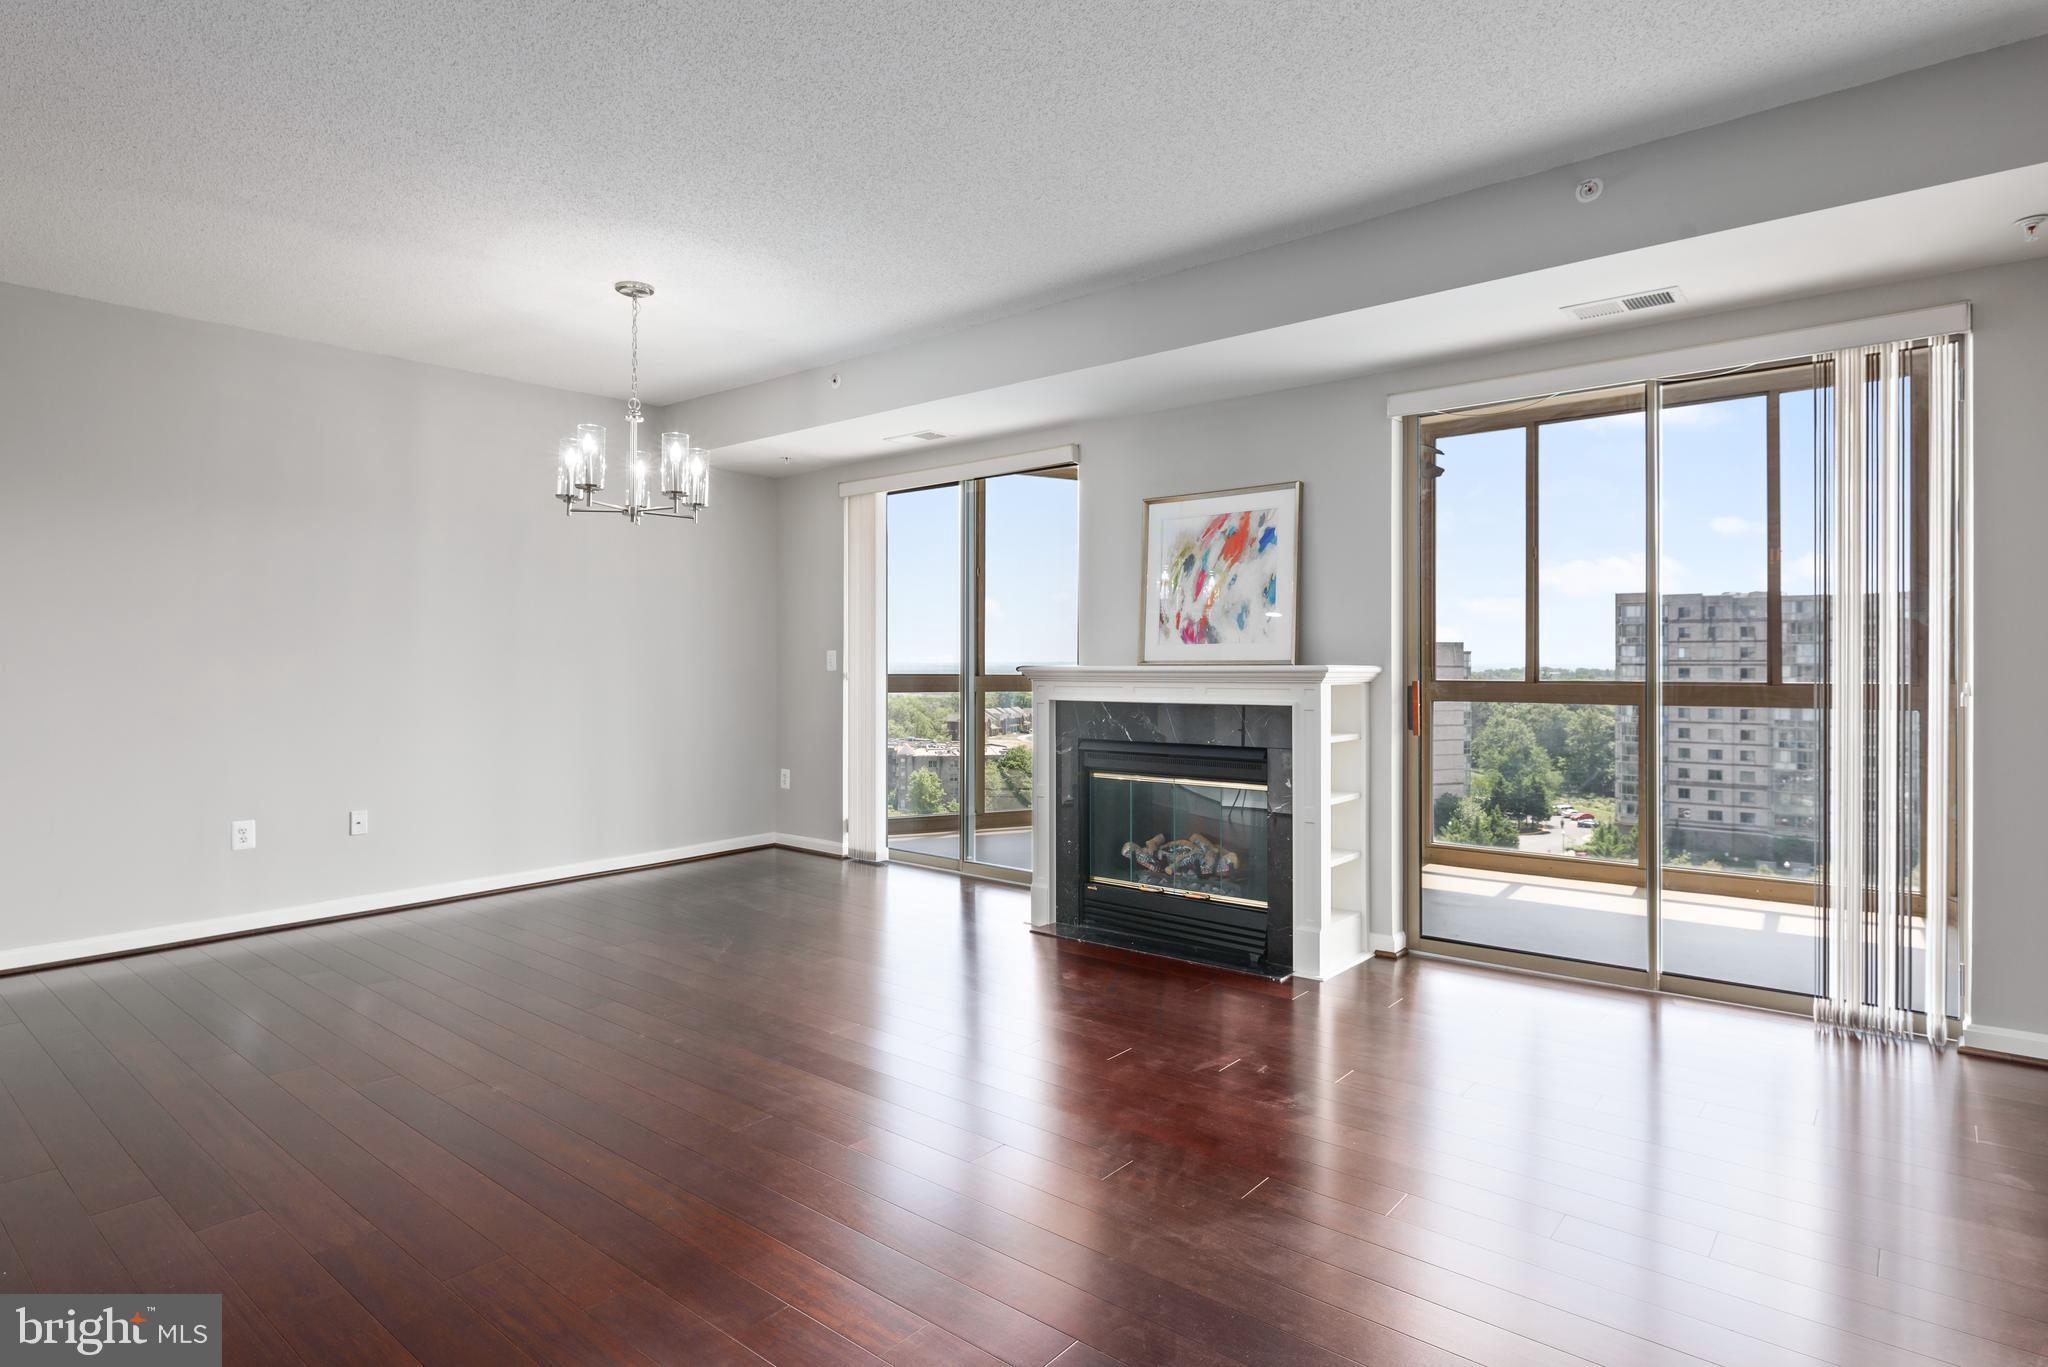 BRAND NEW updates in this gorgeous move-in ready 3 bed/2 bath condo in the Potomac Ridge building of